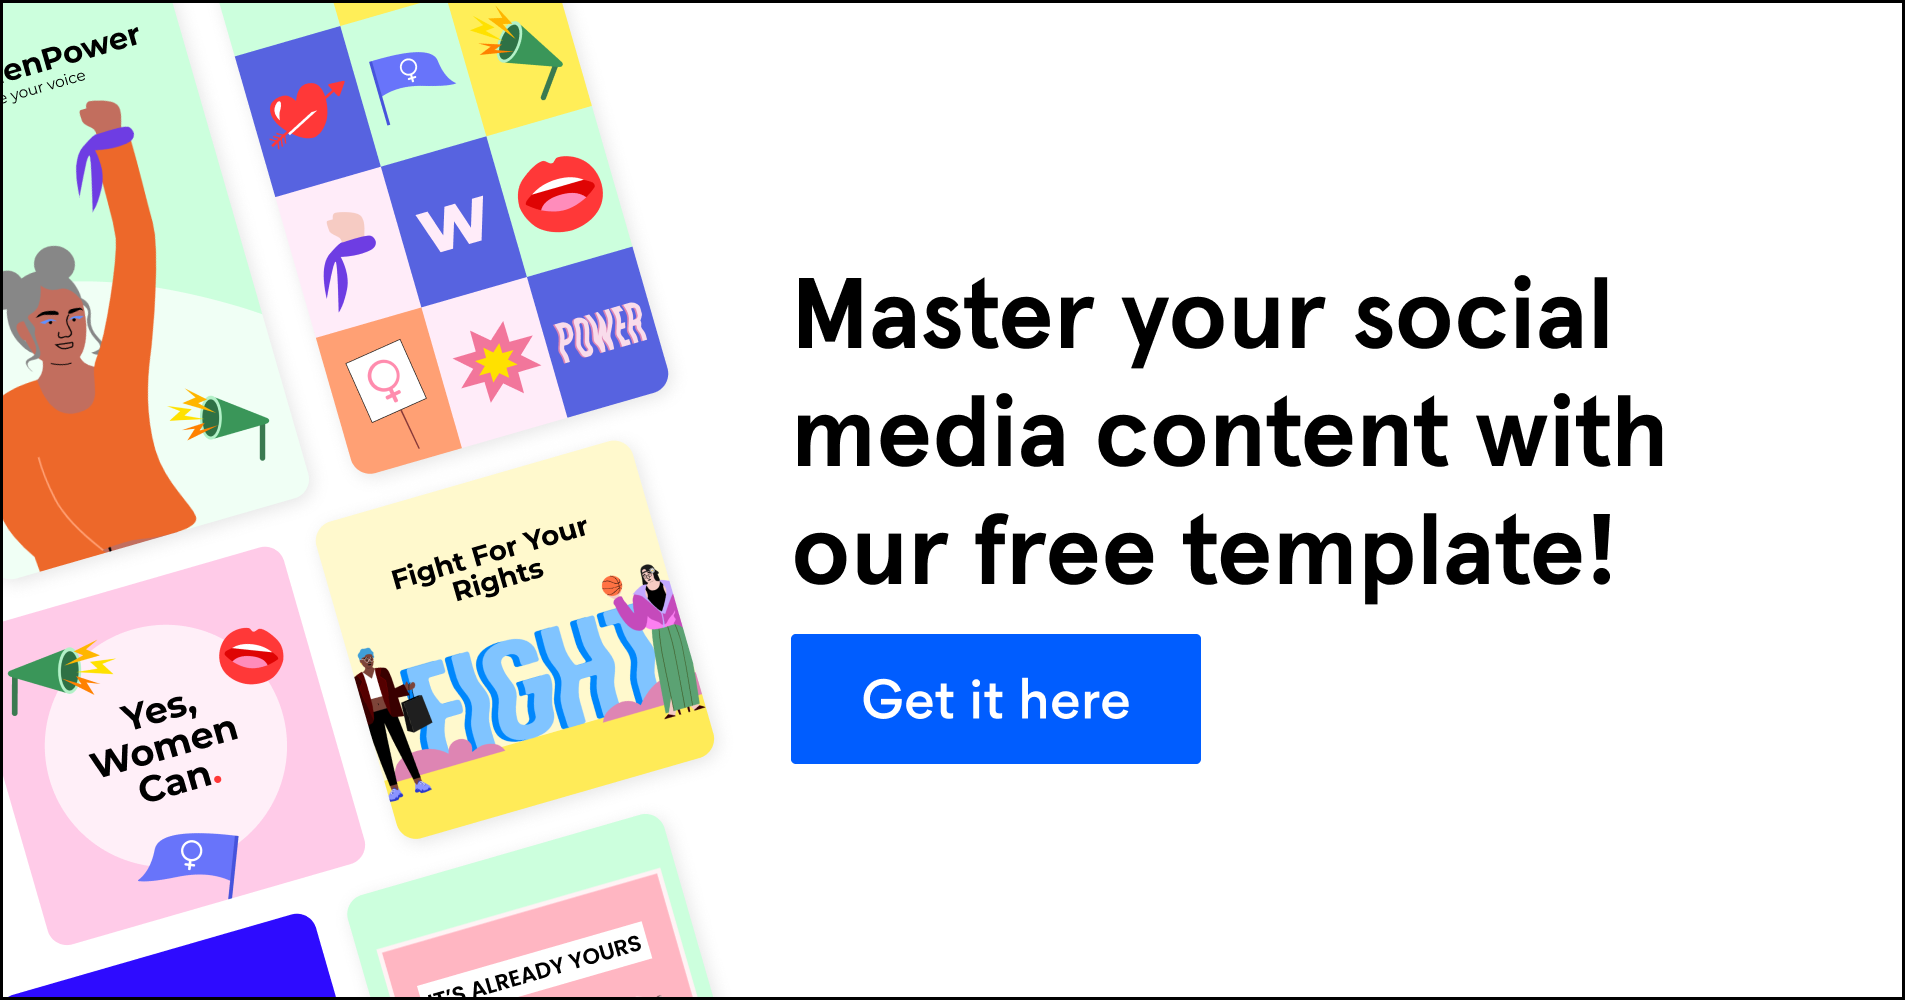 Master your social media content with our free template. Get it here